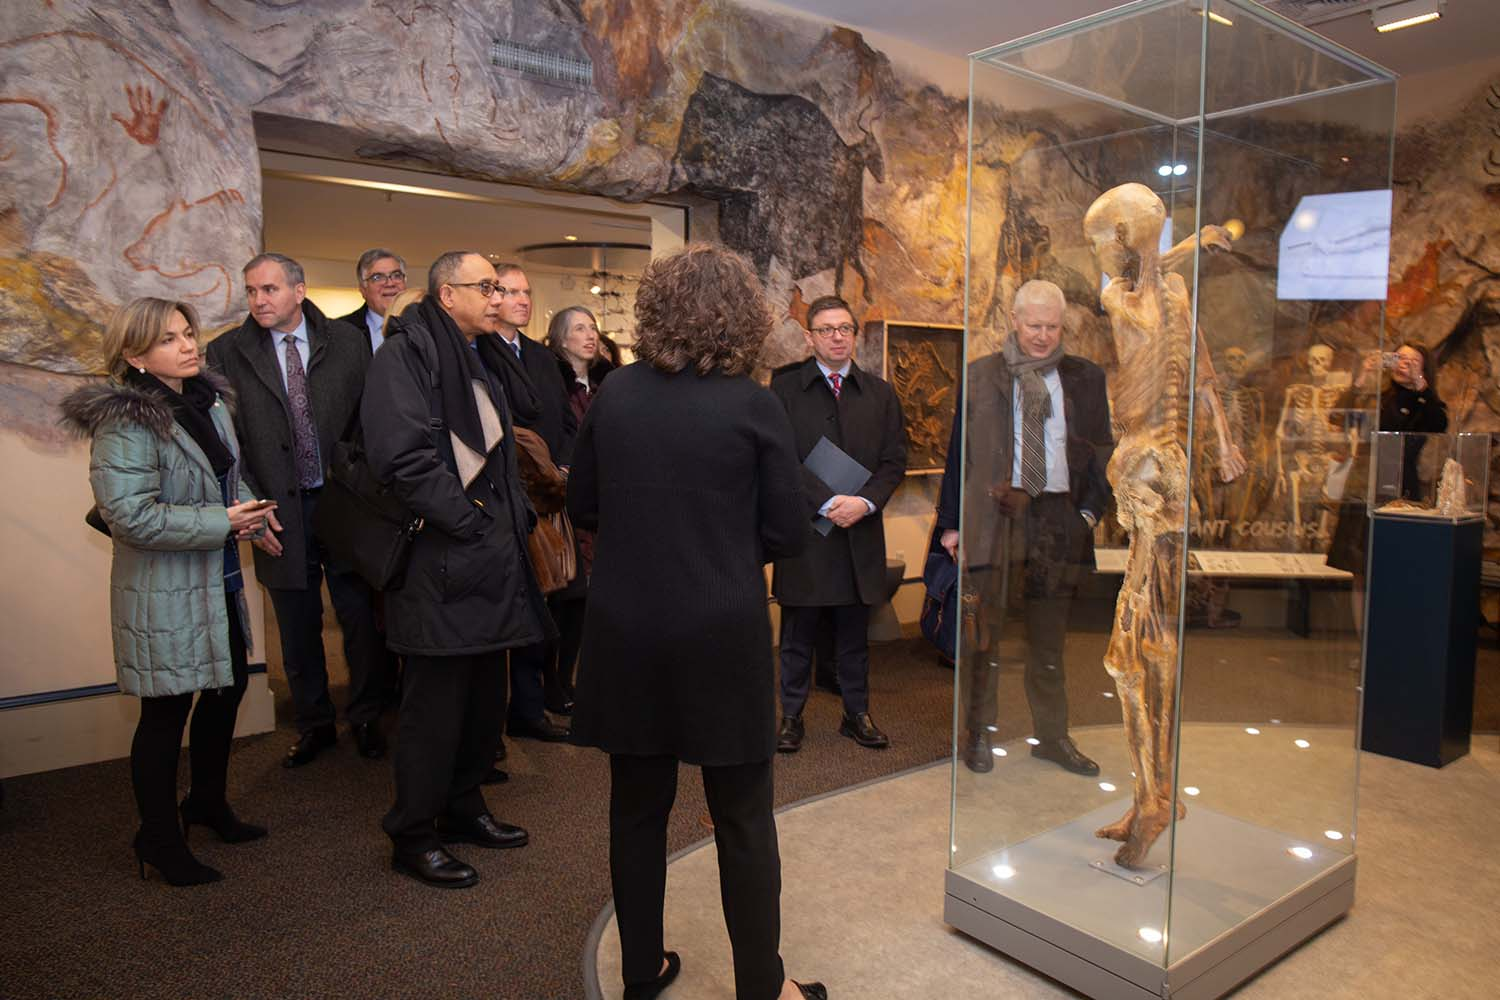 photo of UN delegates with Ötzi the Iceman exhibit